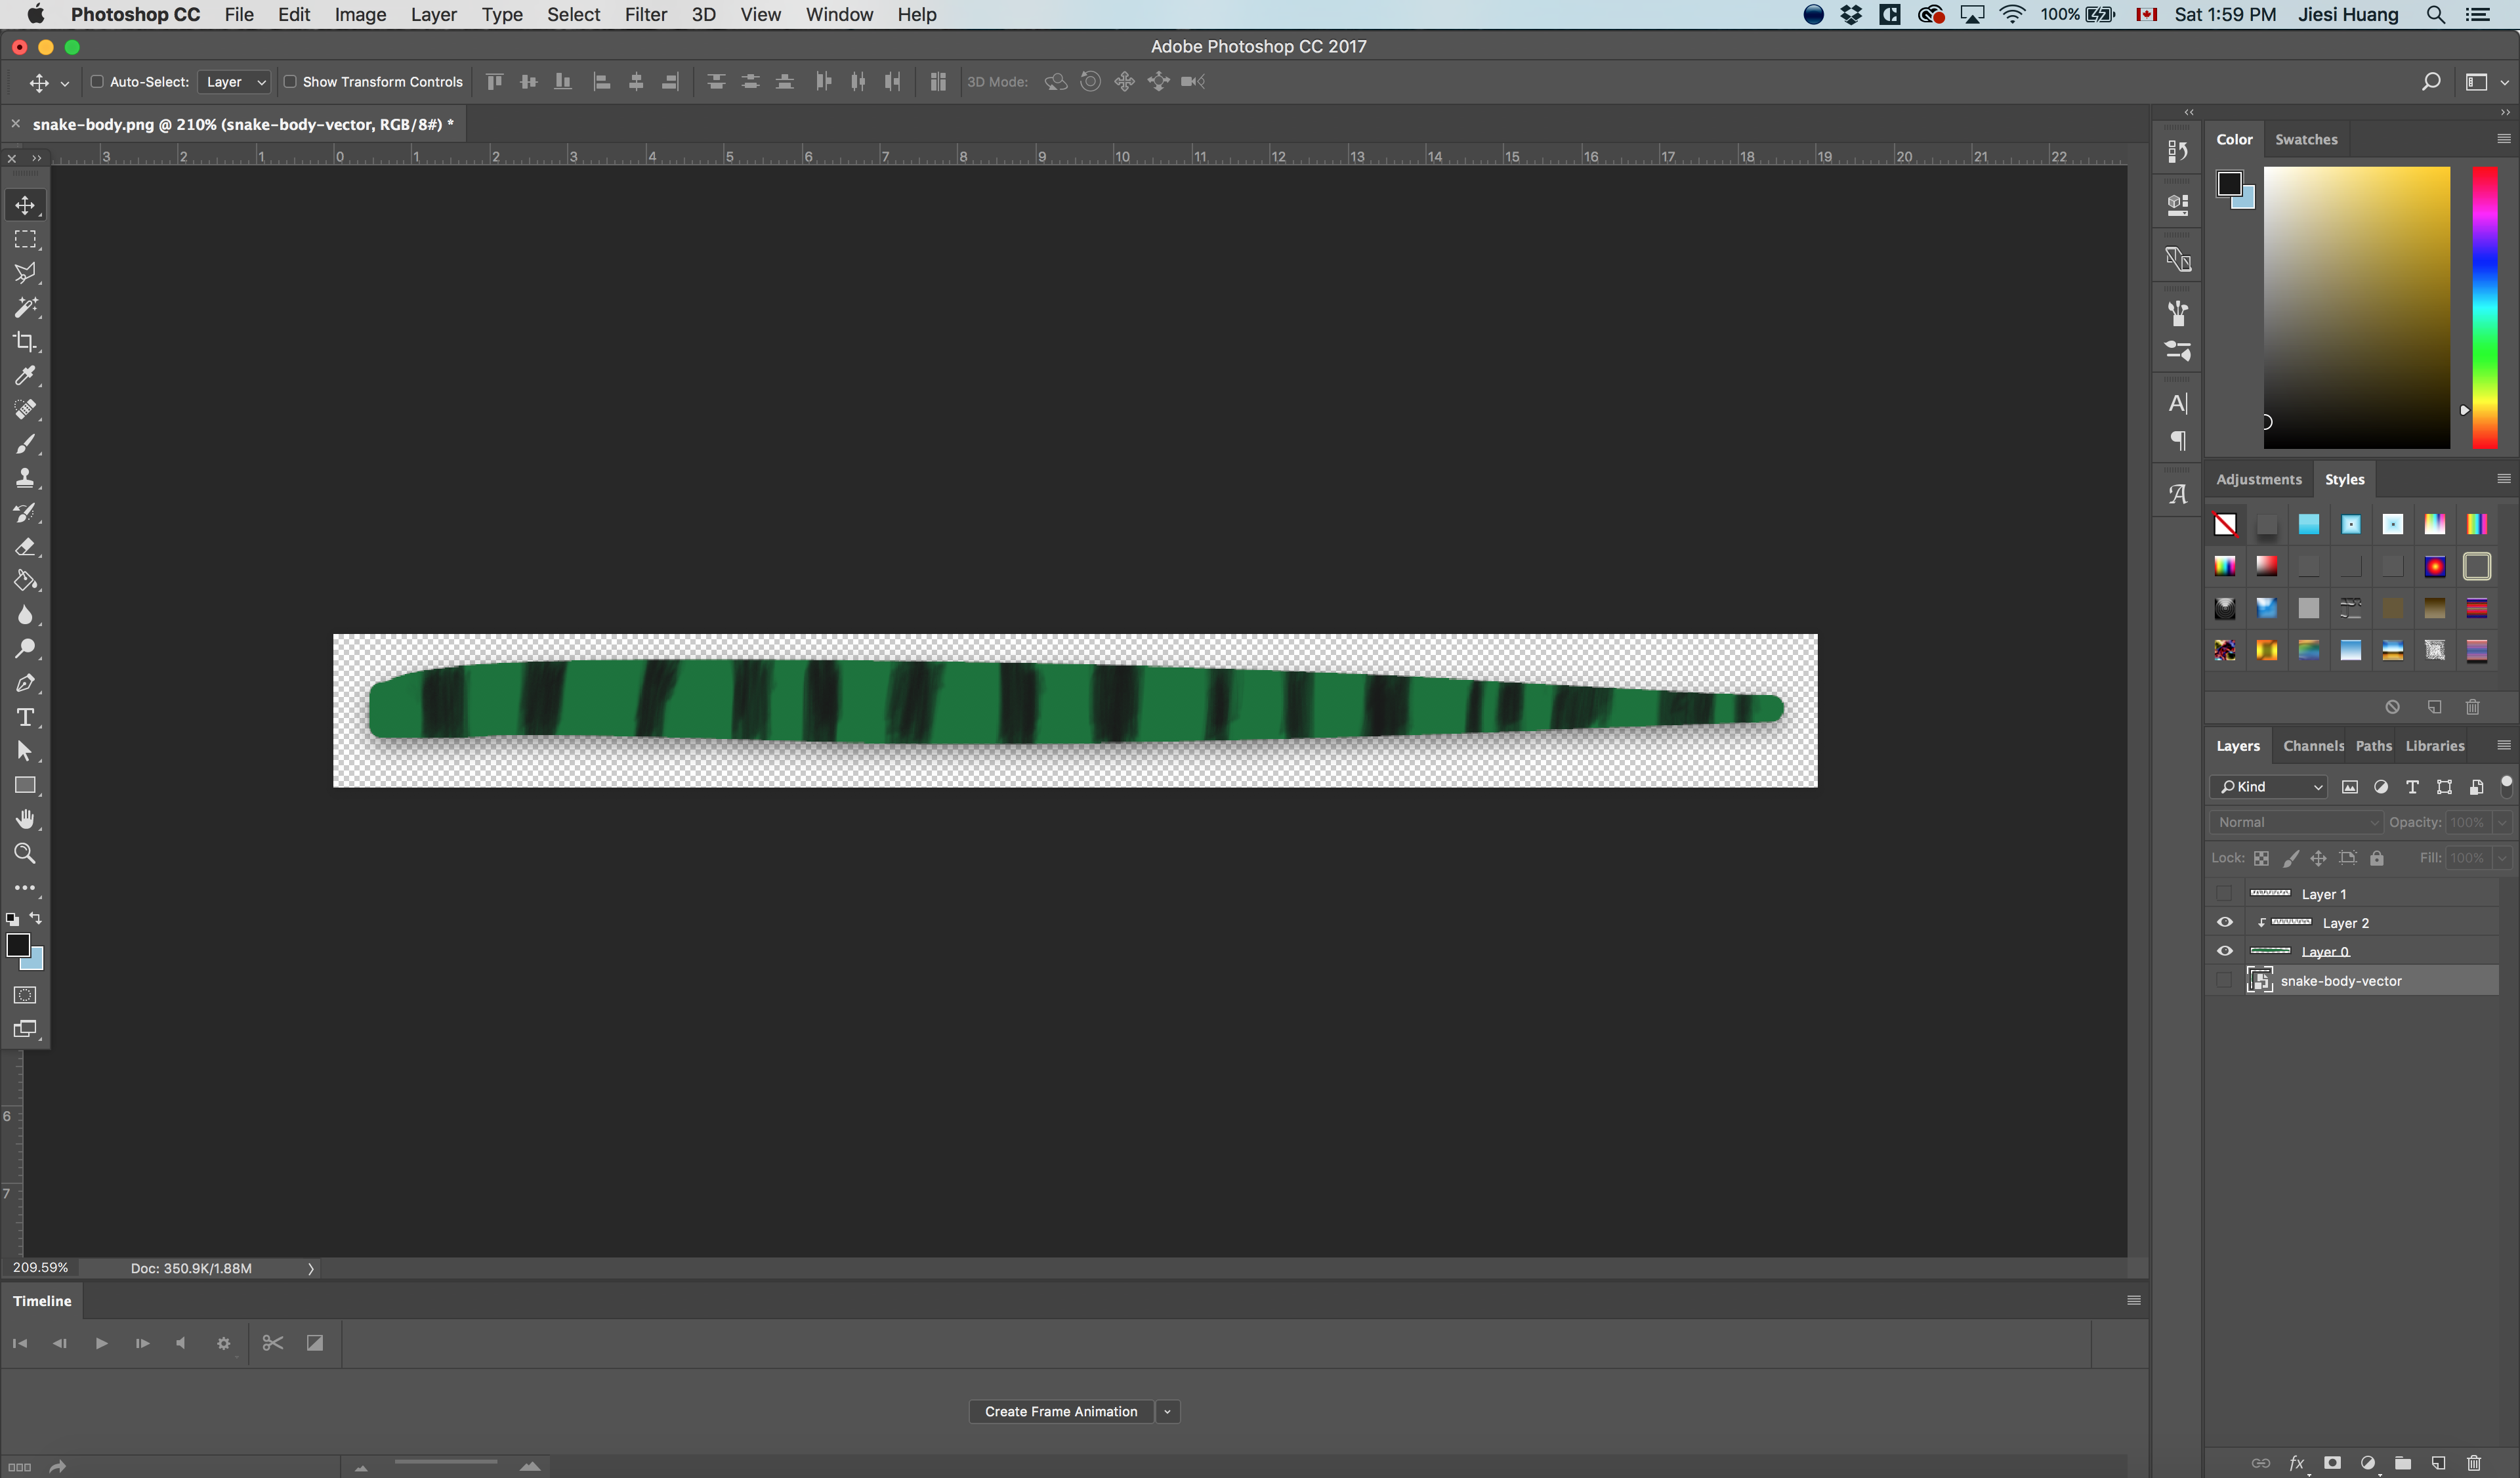 Snake Animation in After Effects using the Omino Snake plugin